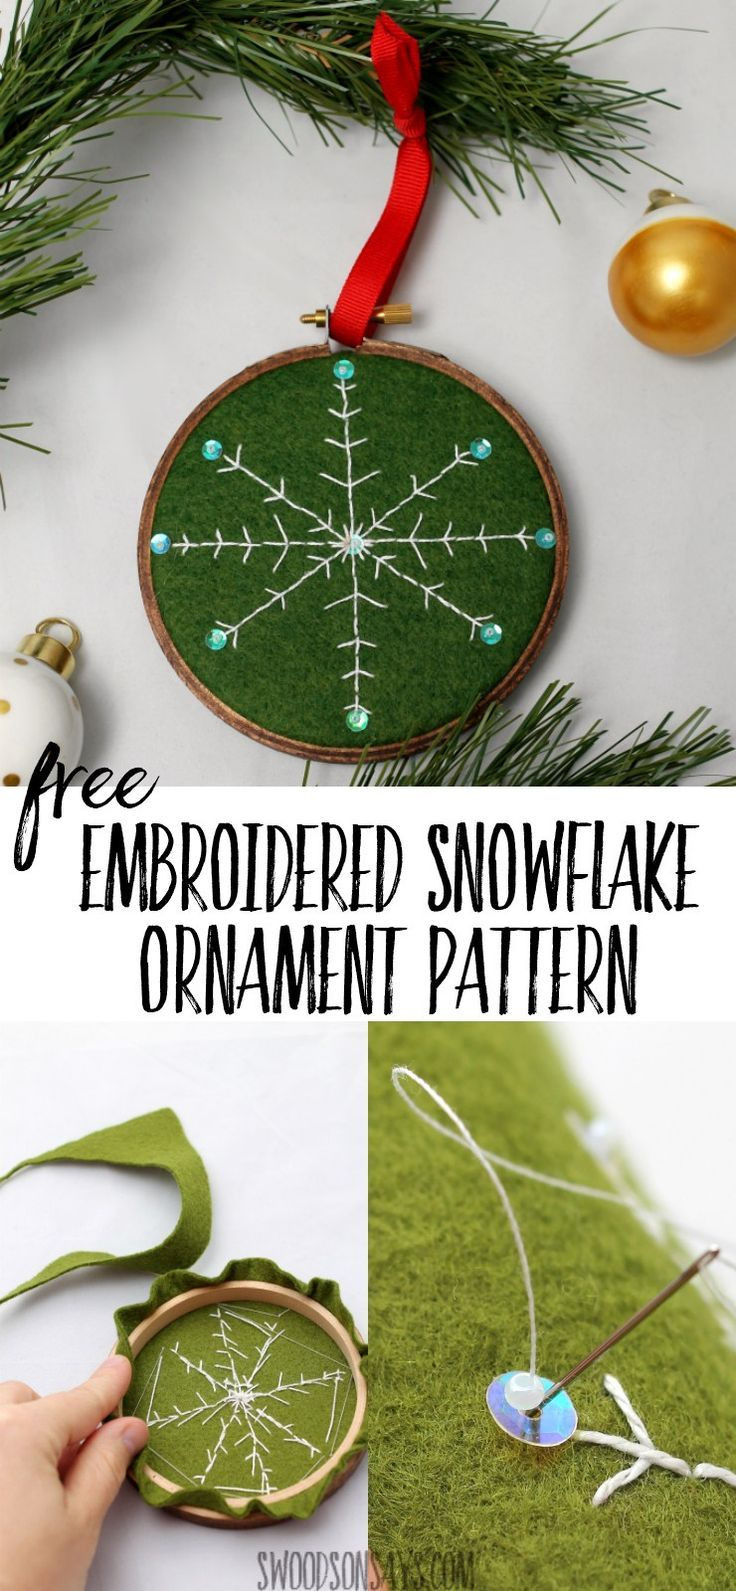 Free snowflake embroidery pattern & ornament tutorial